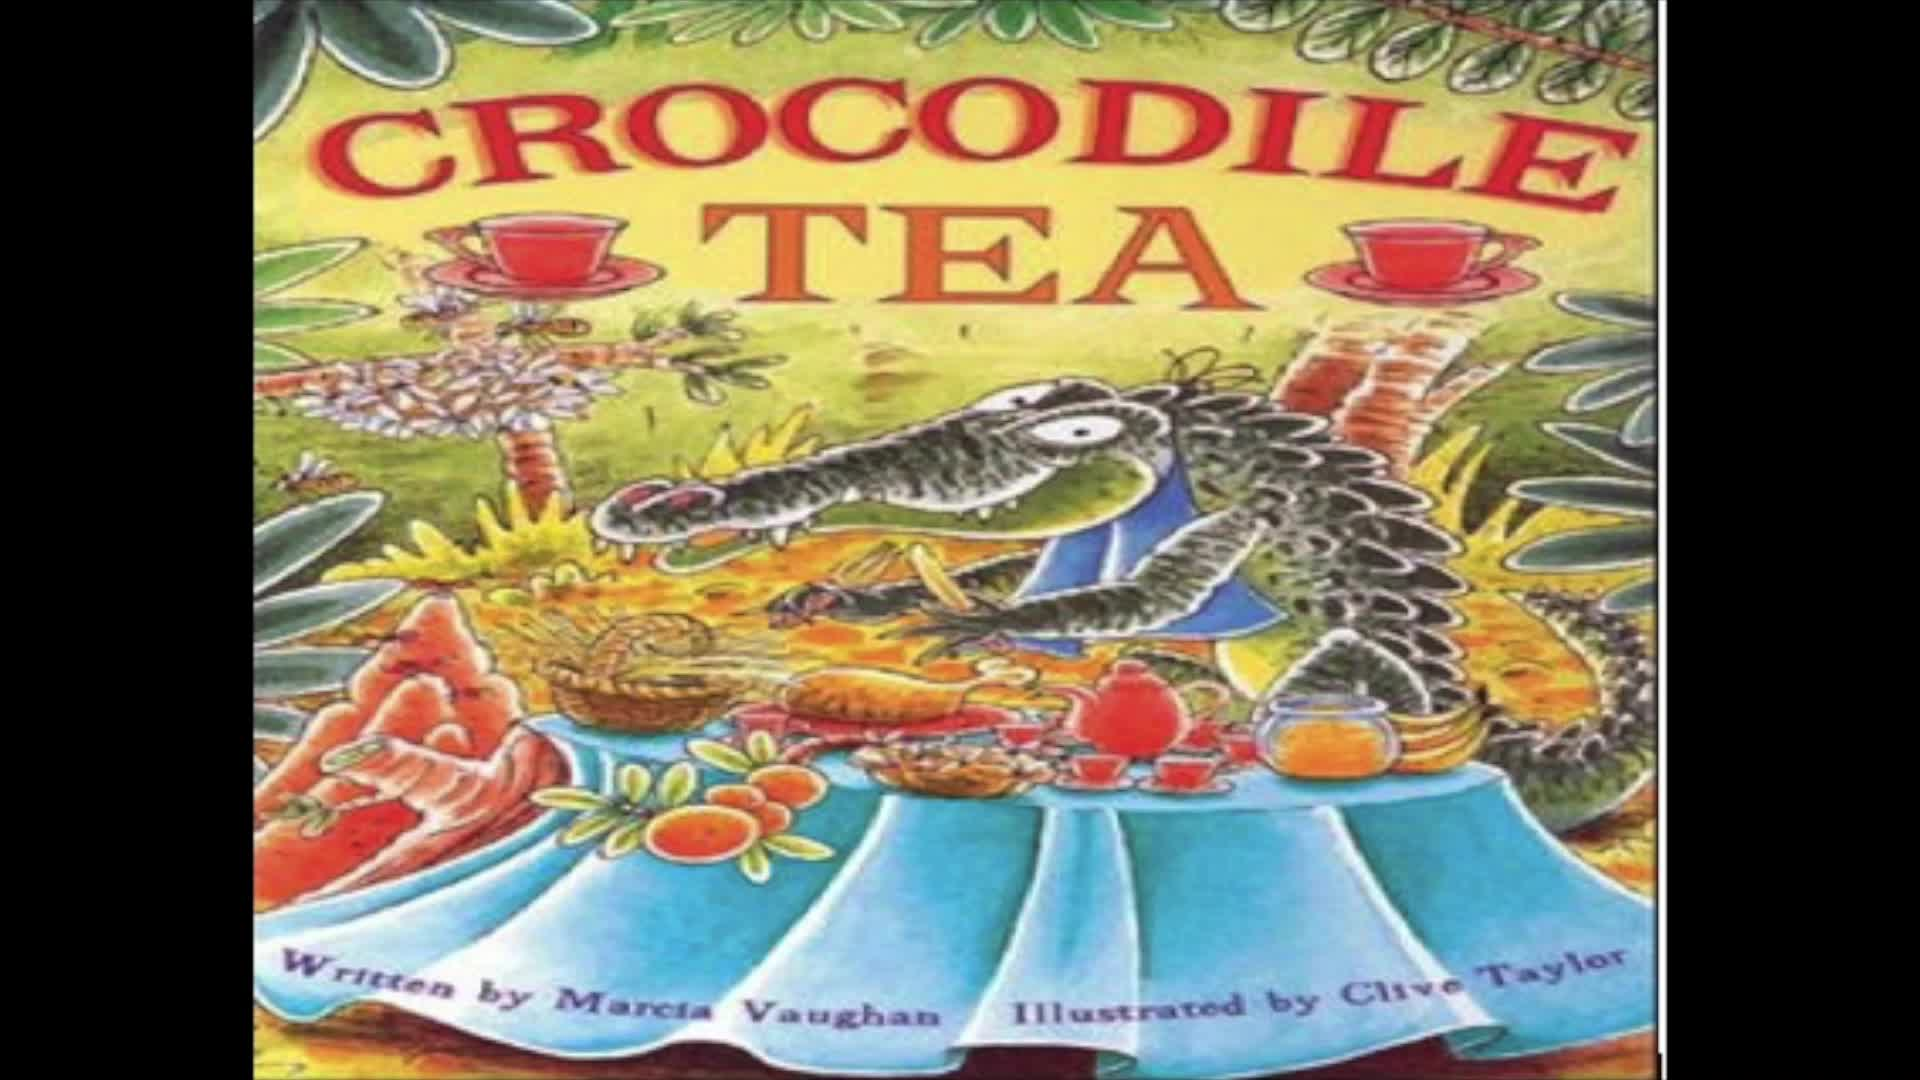 Crocodile Tea